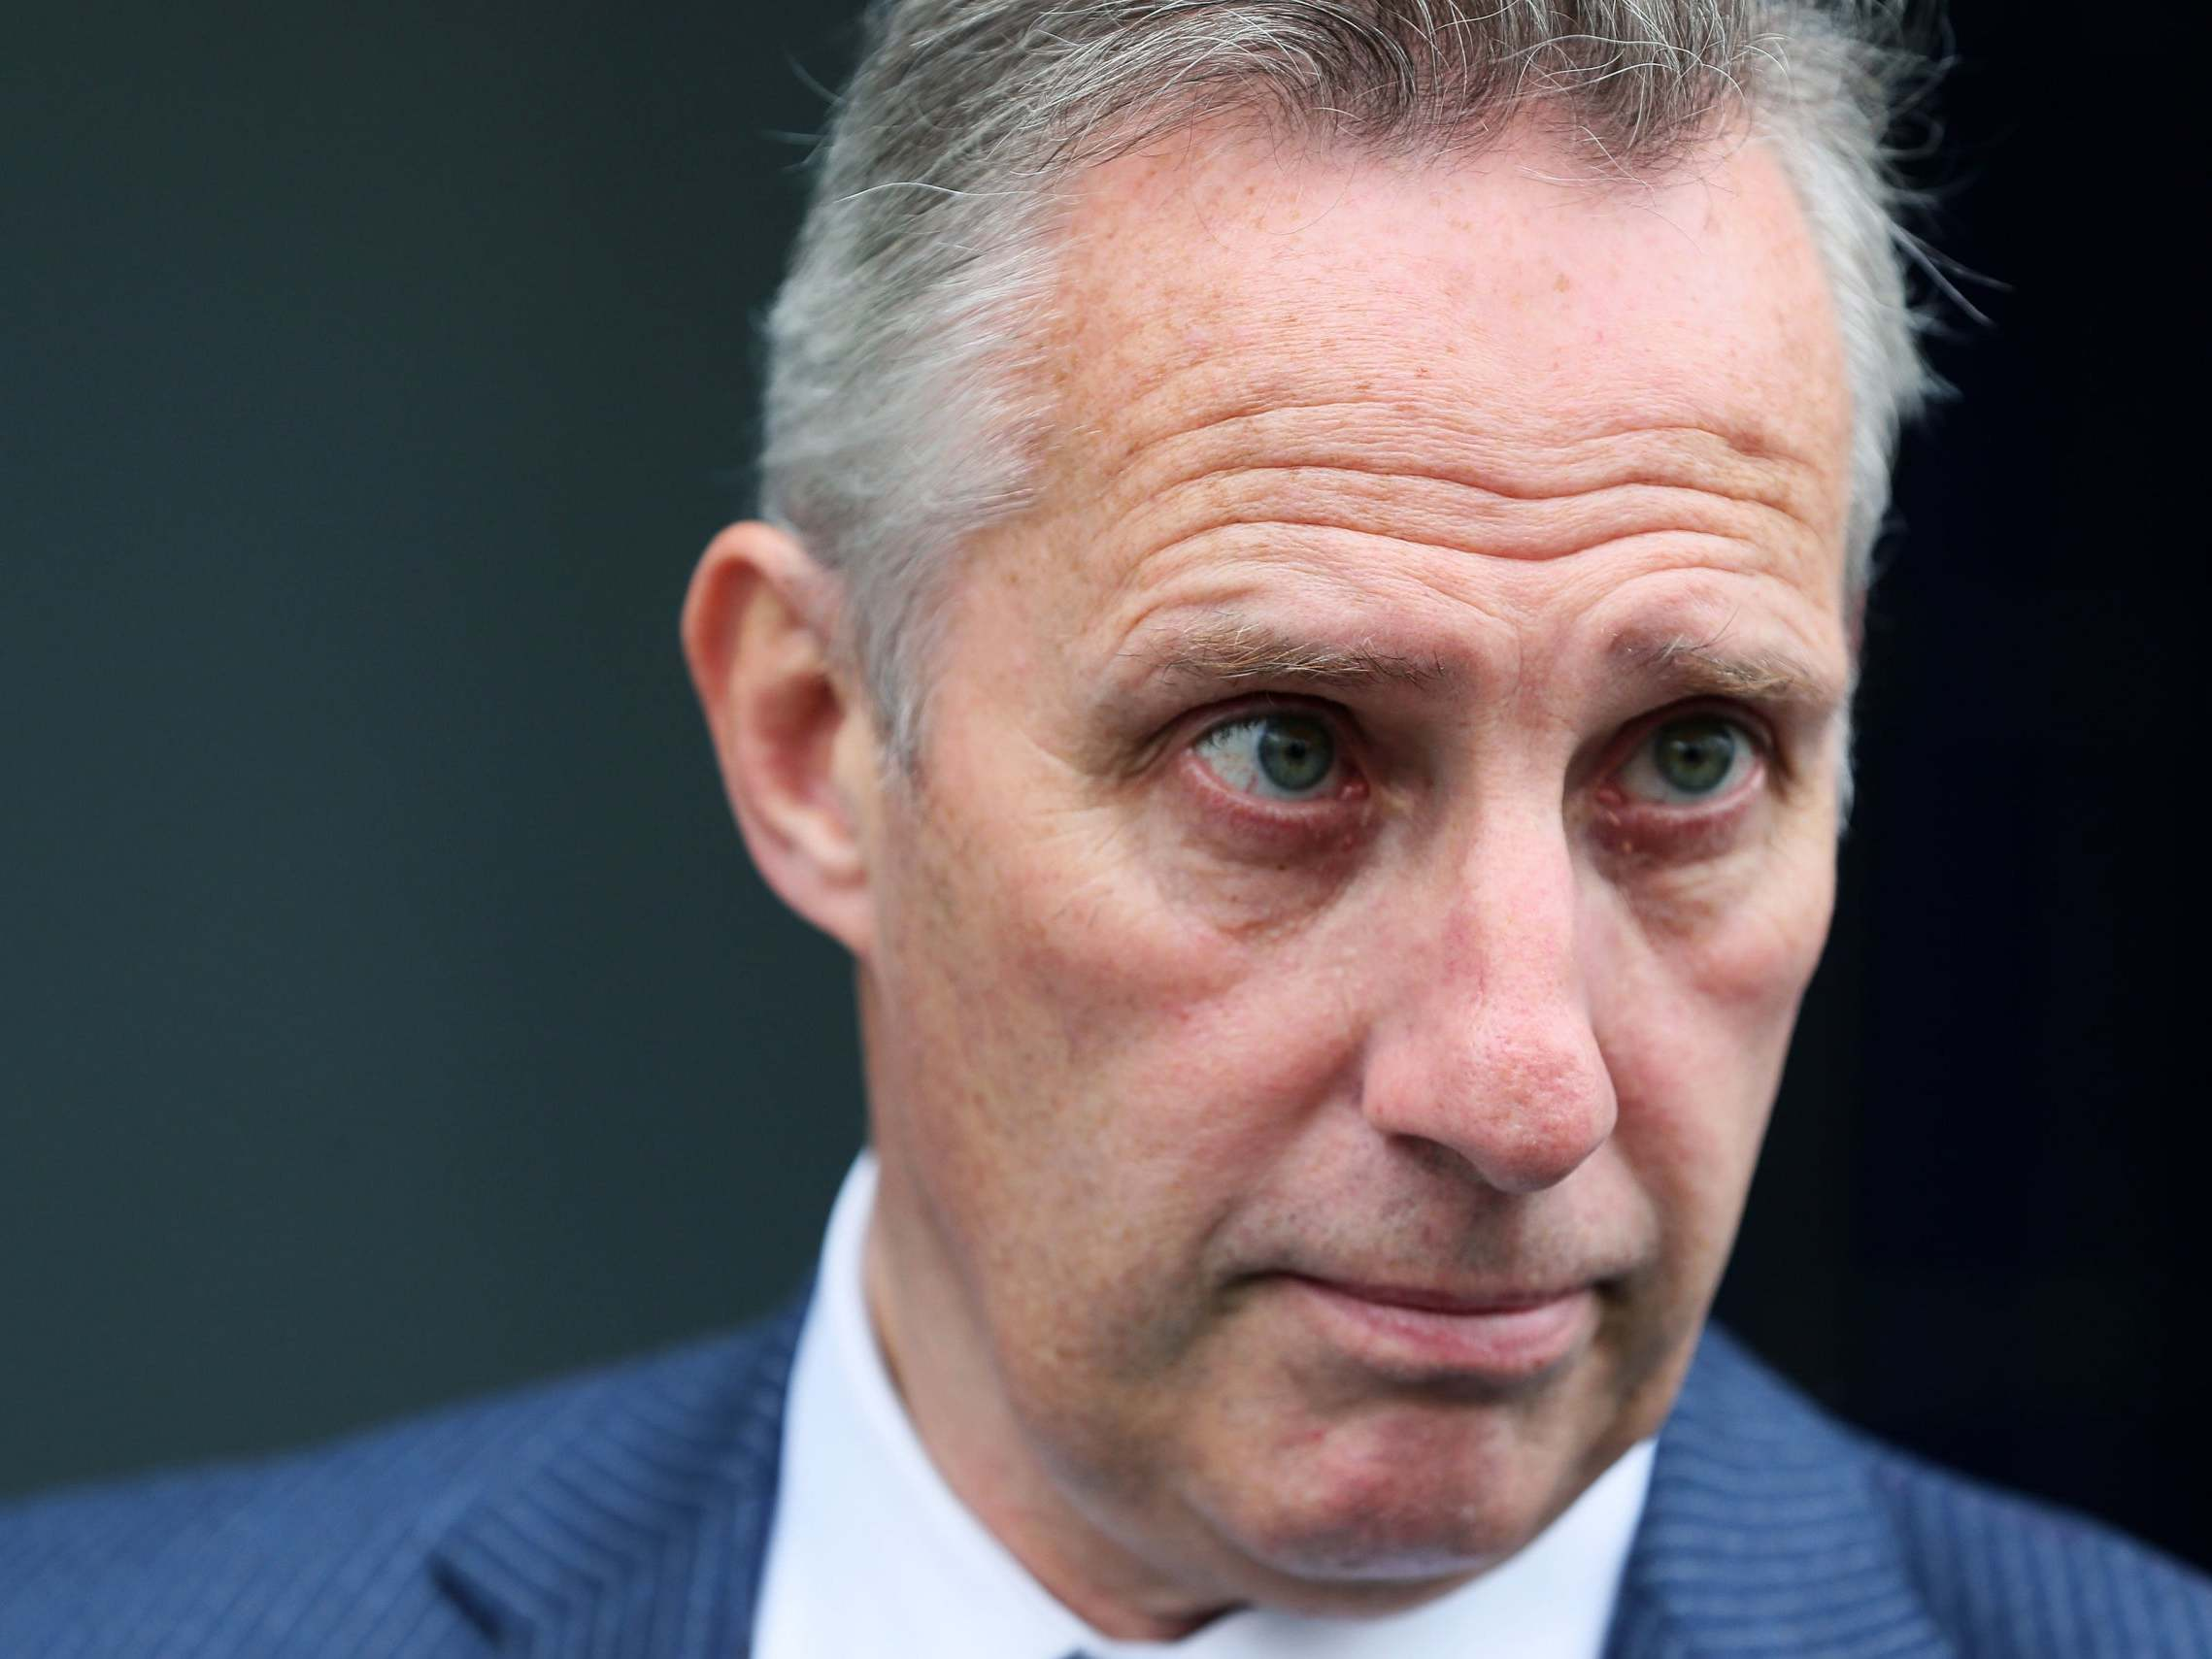 DUP's Ian Paisley faces fresh questions over who paid for Maldives t…